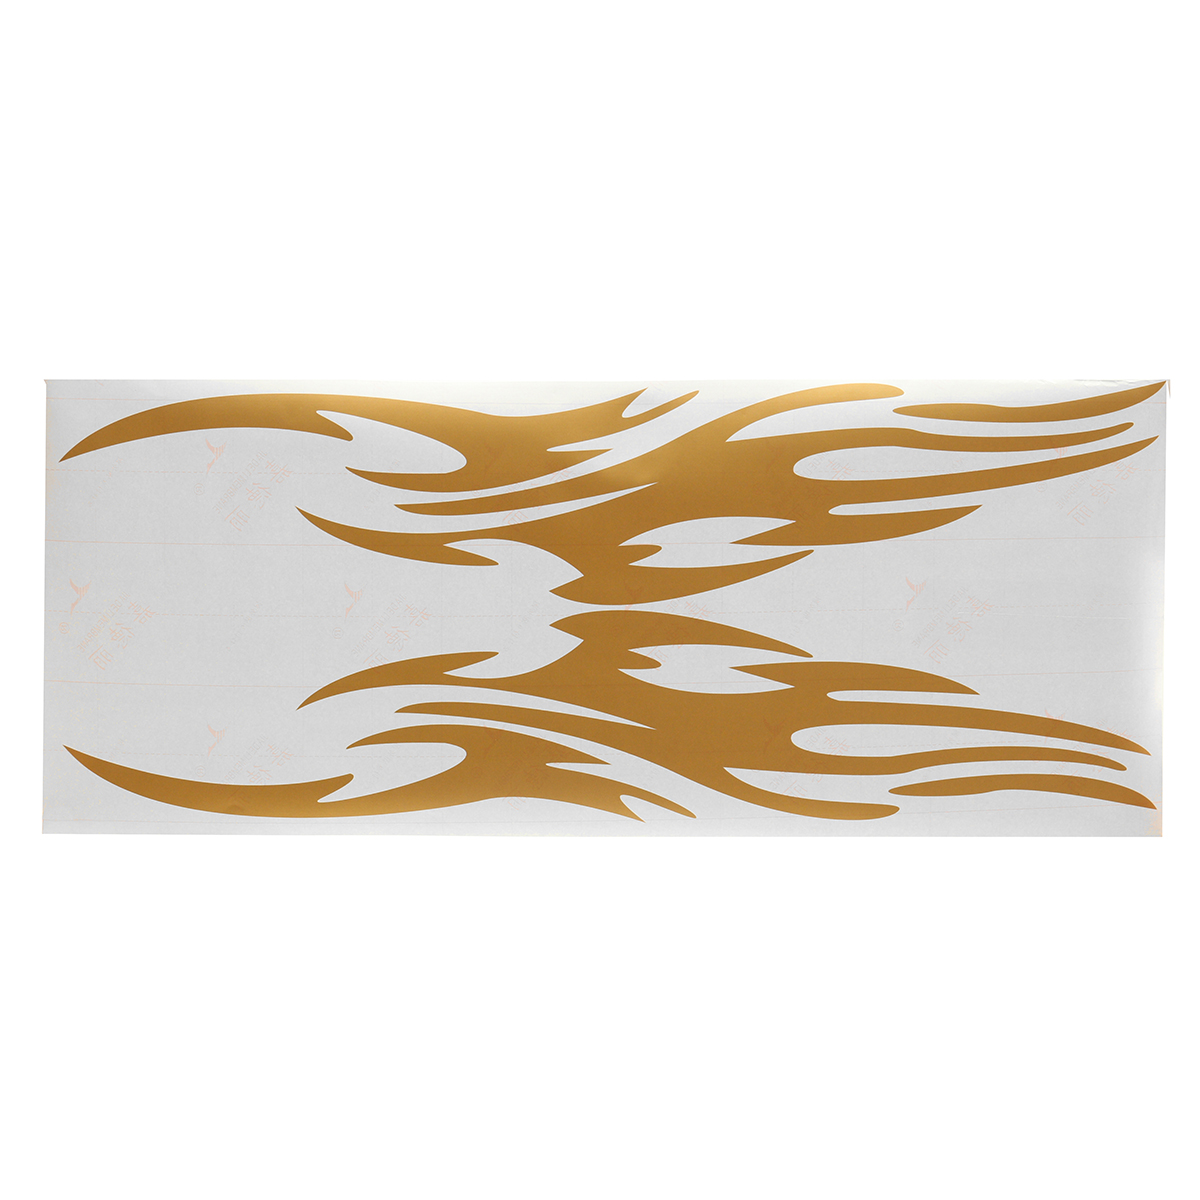 Motorcycle Car Flame Fire Hood Decal Vinyl Graphic Fashion Sticker Universal